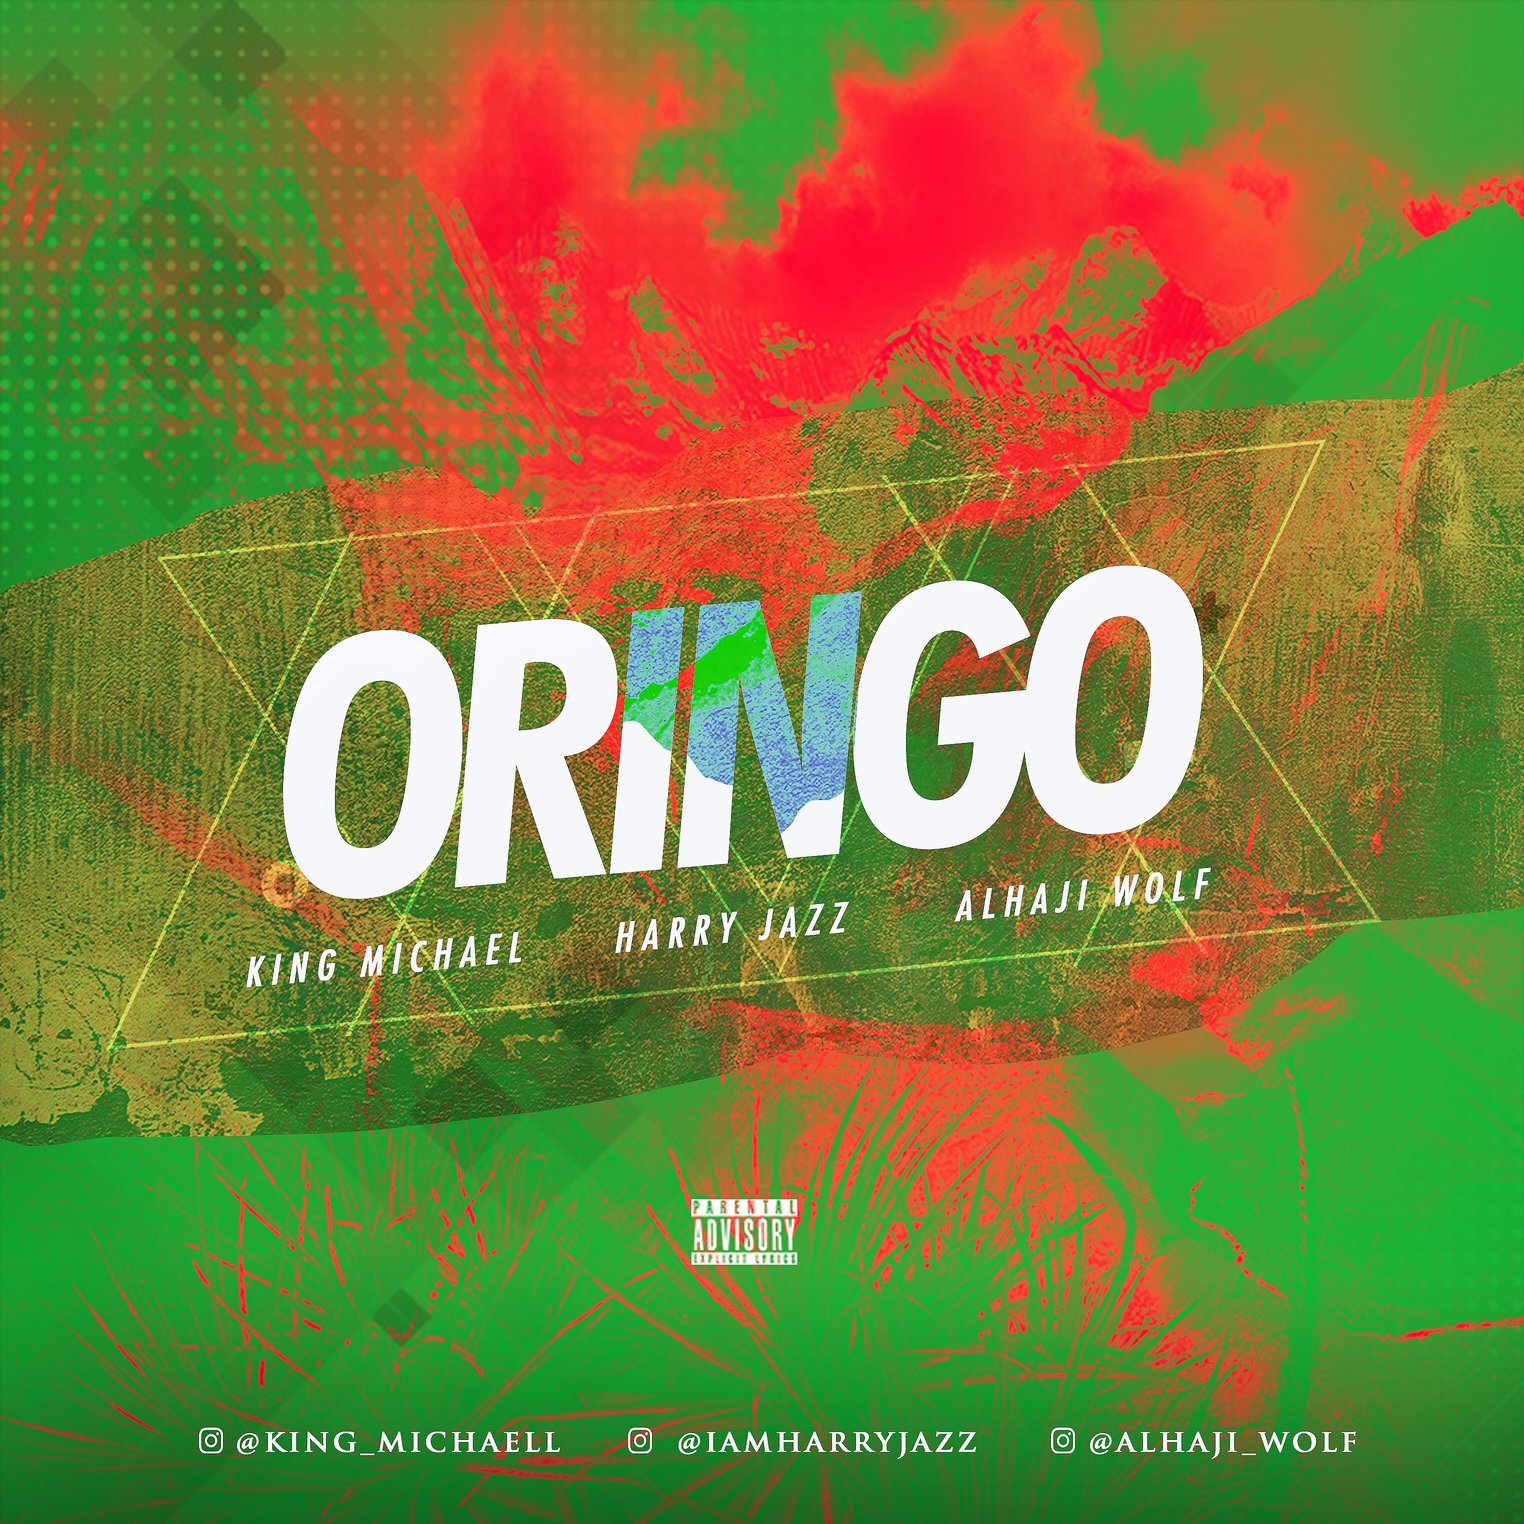 King Micheal x Harry Jazz x Alhaji Wolf – Oringo Artwork (1)